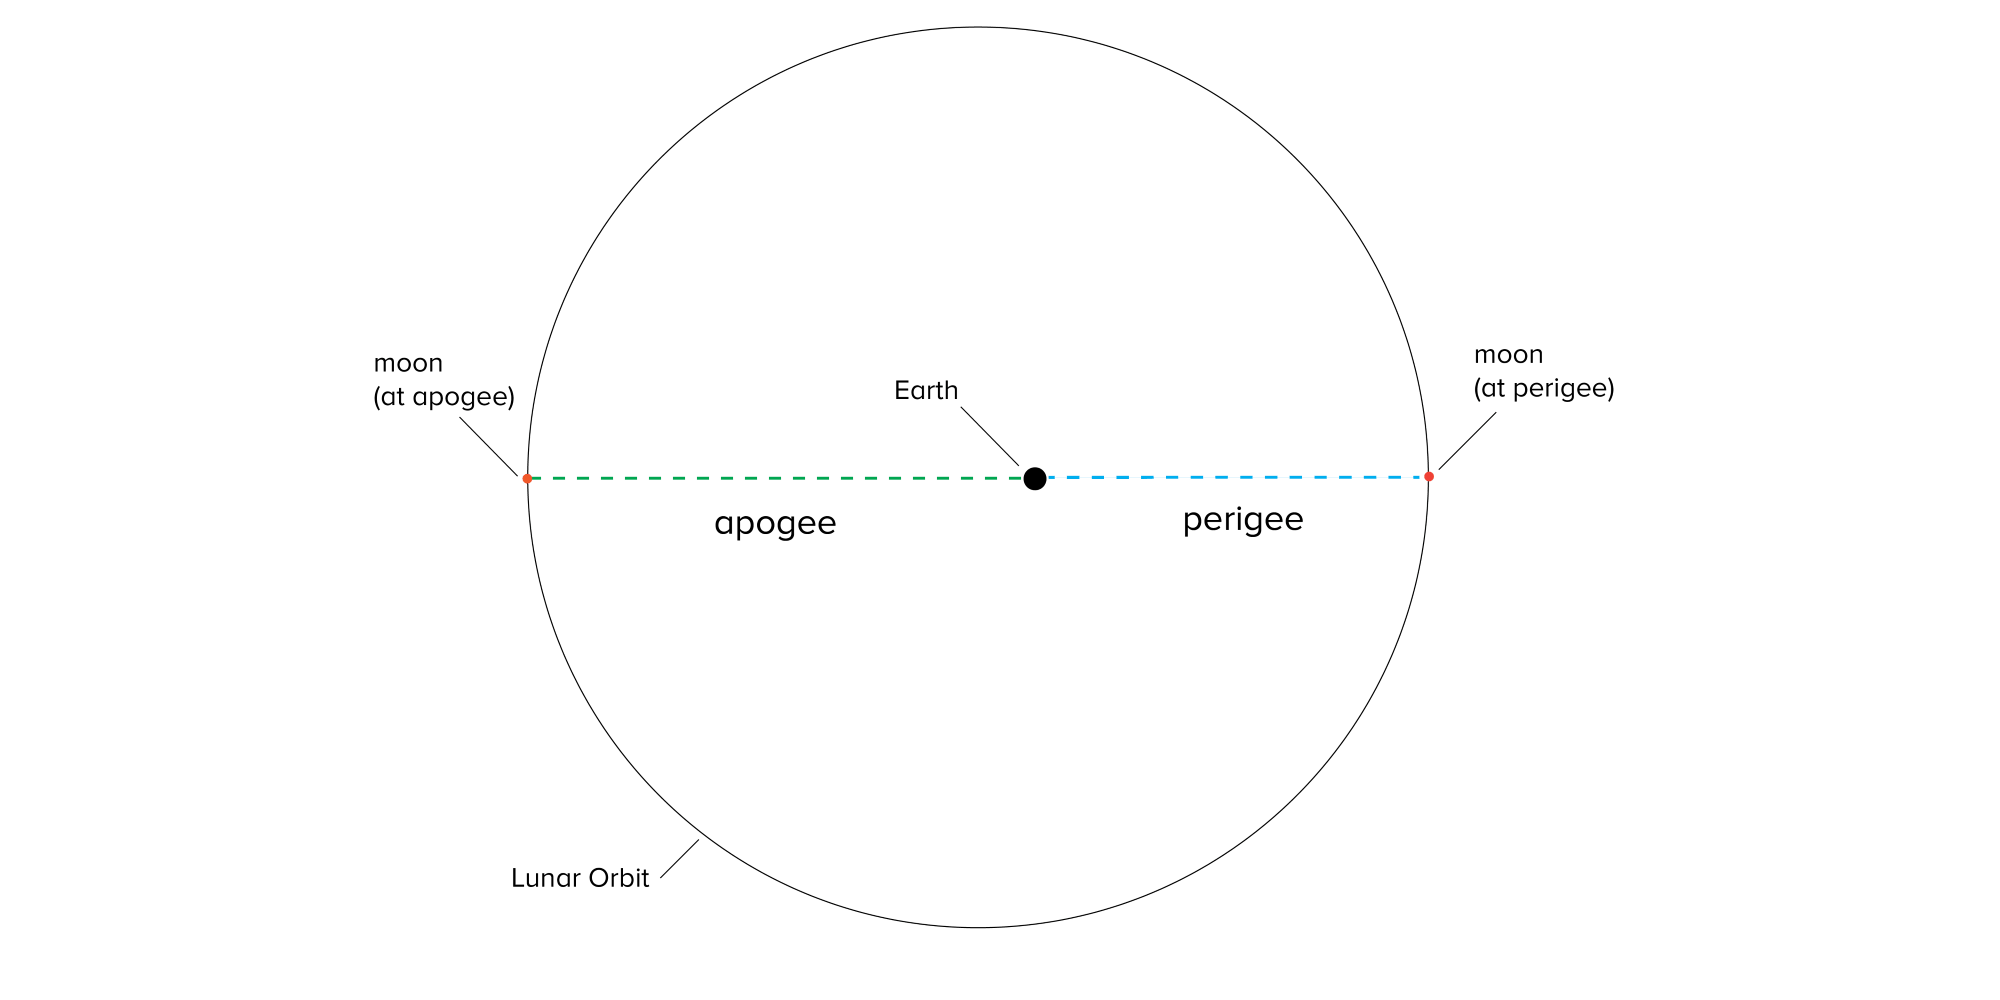 a diagram of a circle, the lunar orbit, with a red dot on the edge of the circle on the left indicating the moon apogee, and another dot directly opposite on the right edge of the circle indicating the moon at perigree. there is a larger black dot in the center of the circle representing the Earth. a blue dashed line connects the apogee and the perigee, the black dot in the center separating the line -- on the left reads apogee, on the right is perigee